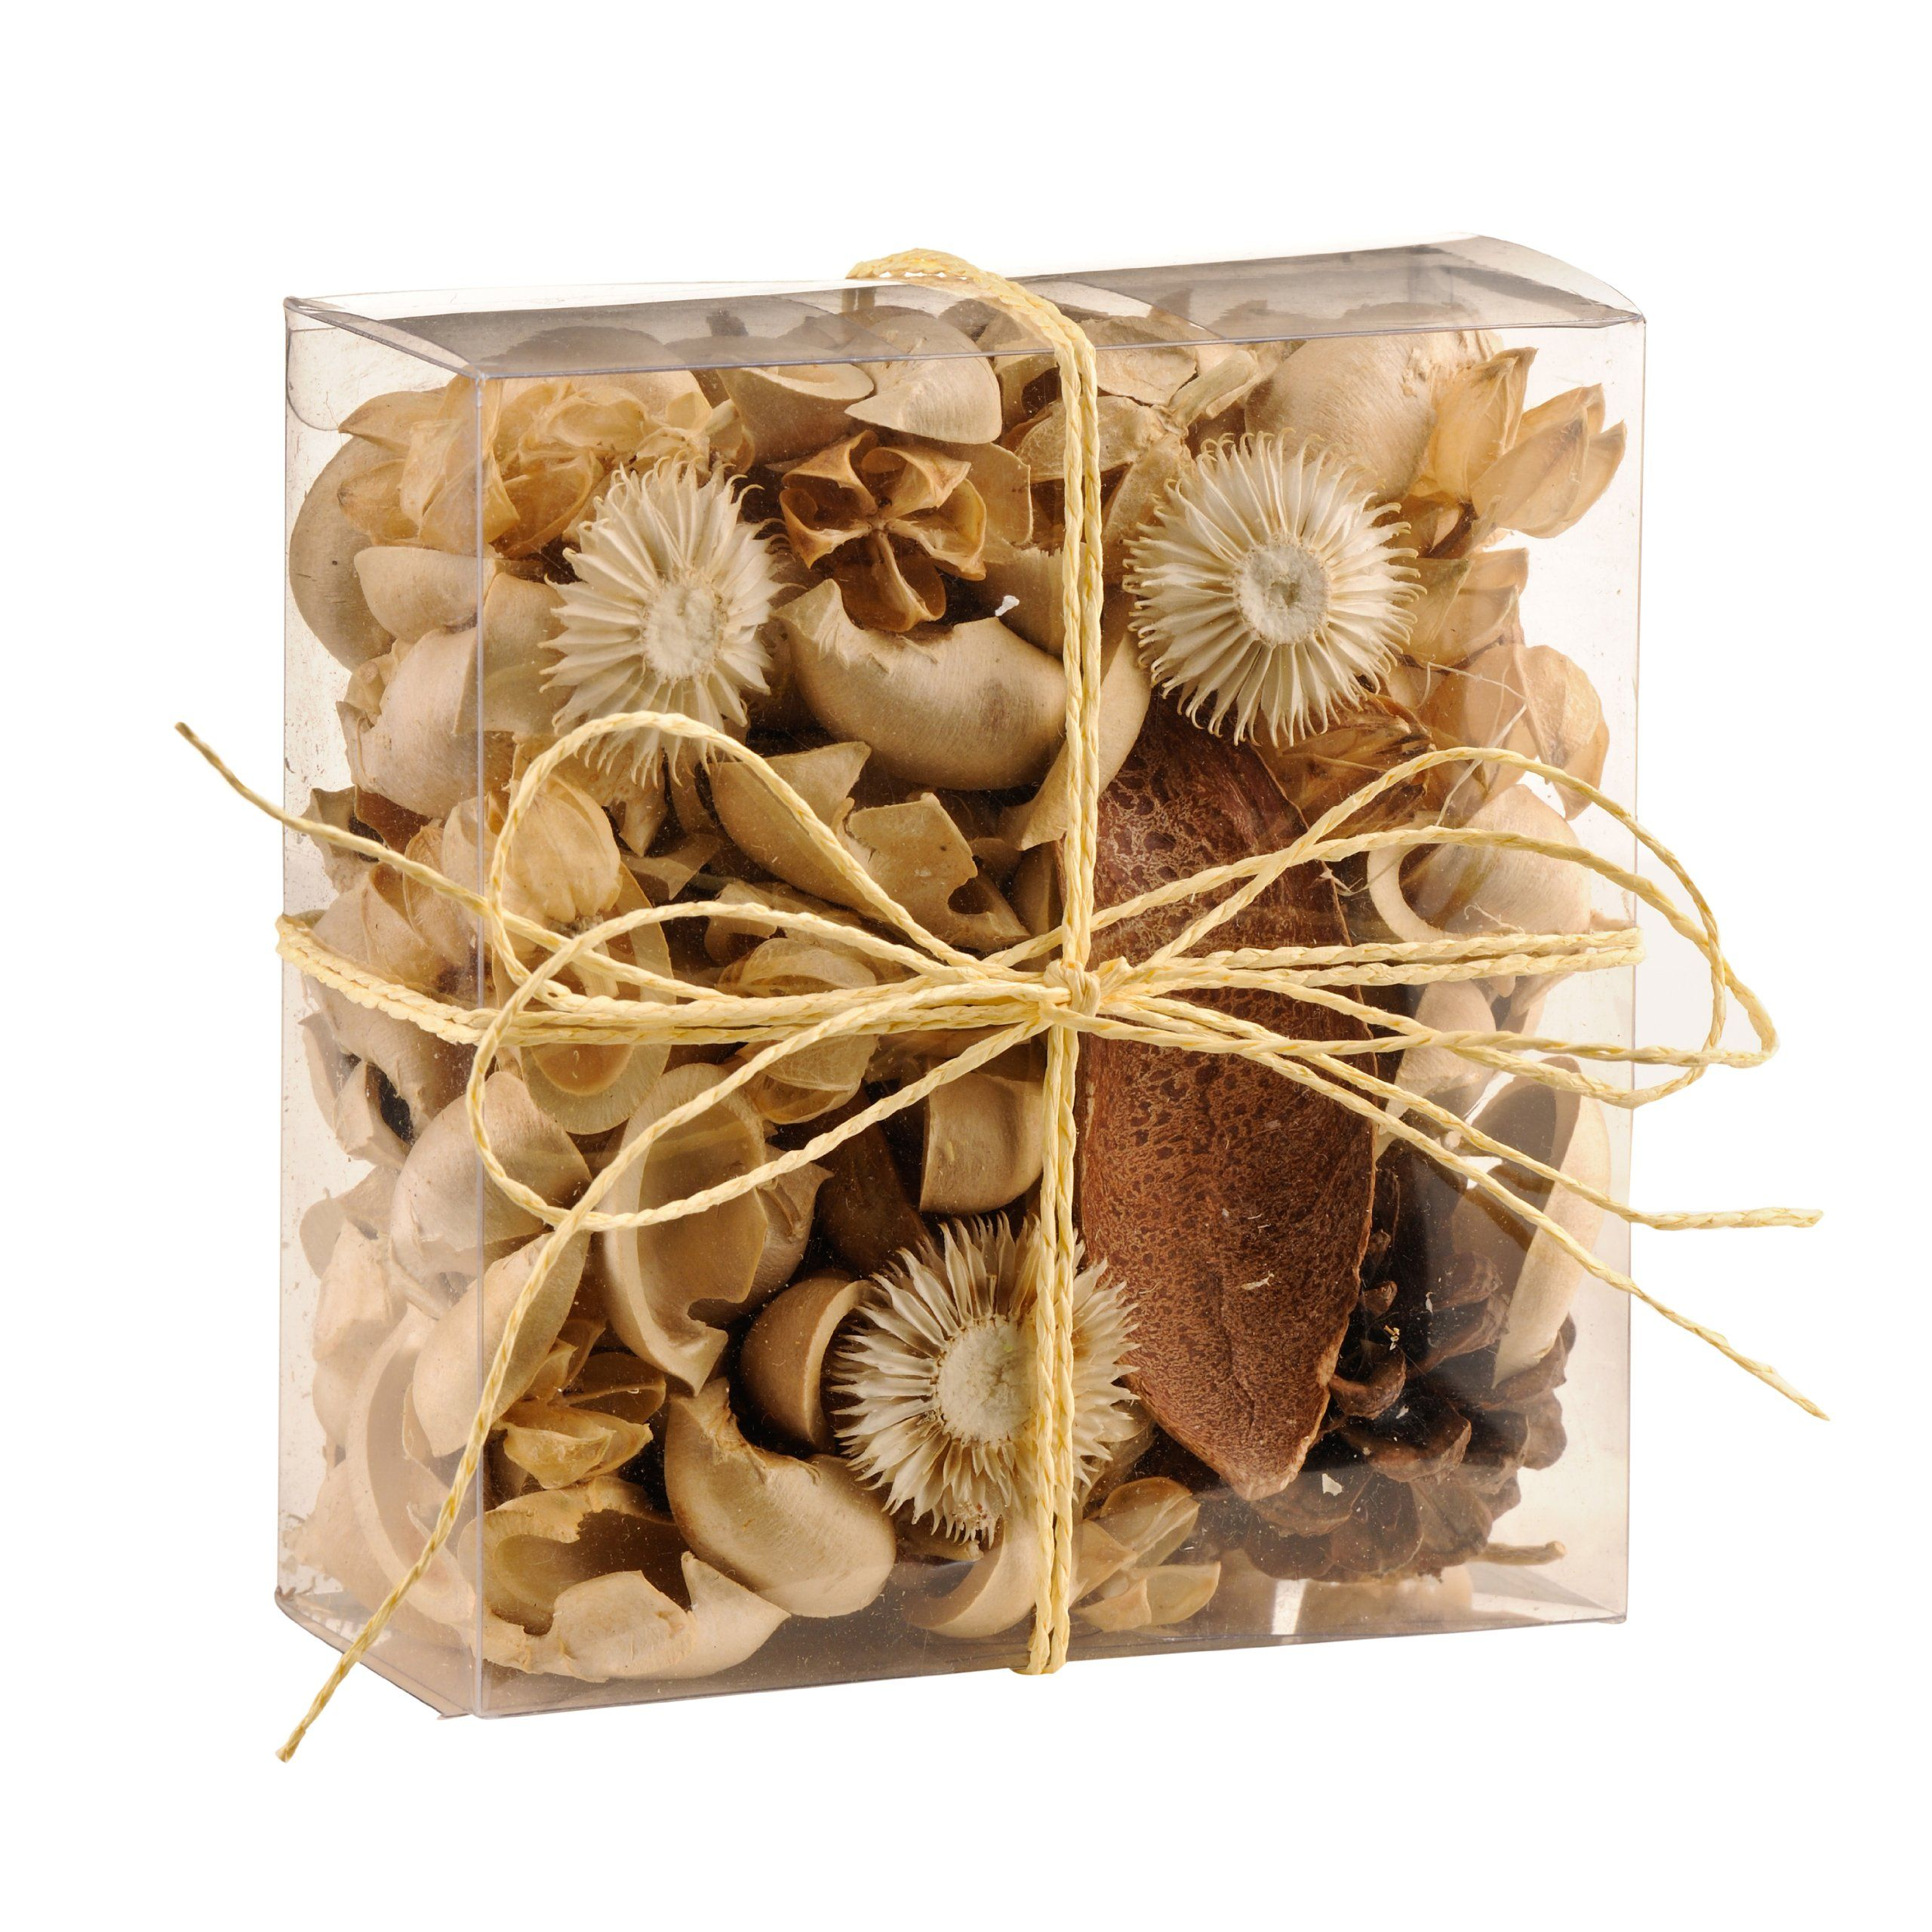 Premier Housewares Vanilla Scented Pot Pourri - 210 g: Amazon.co.uk: Kitchen & Home